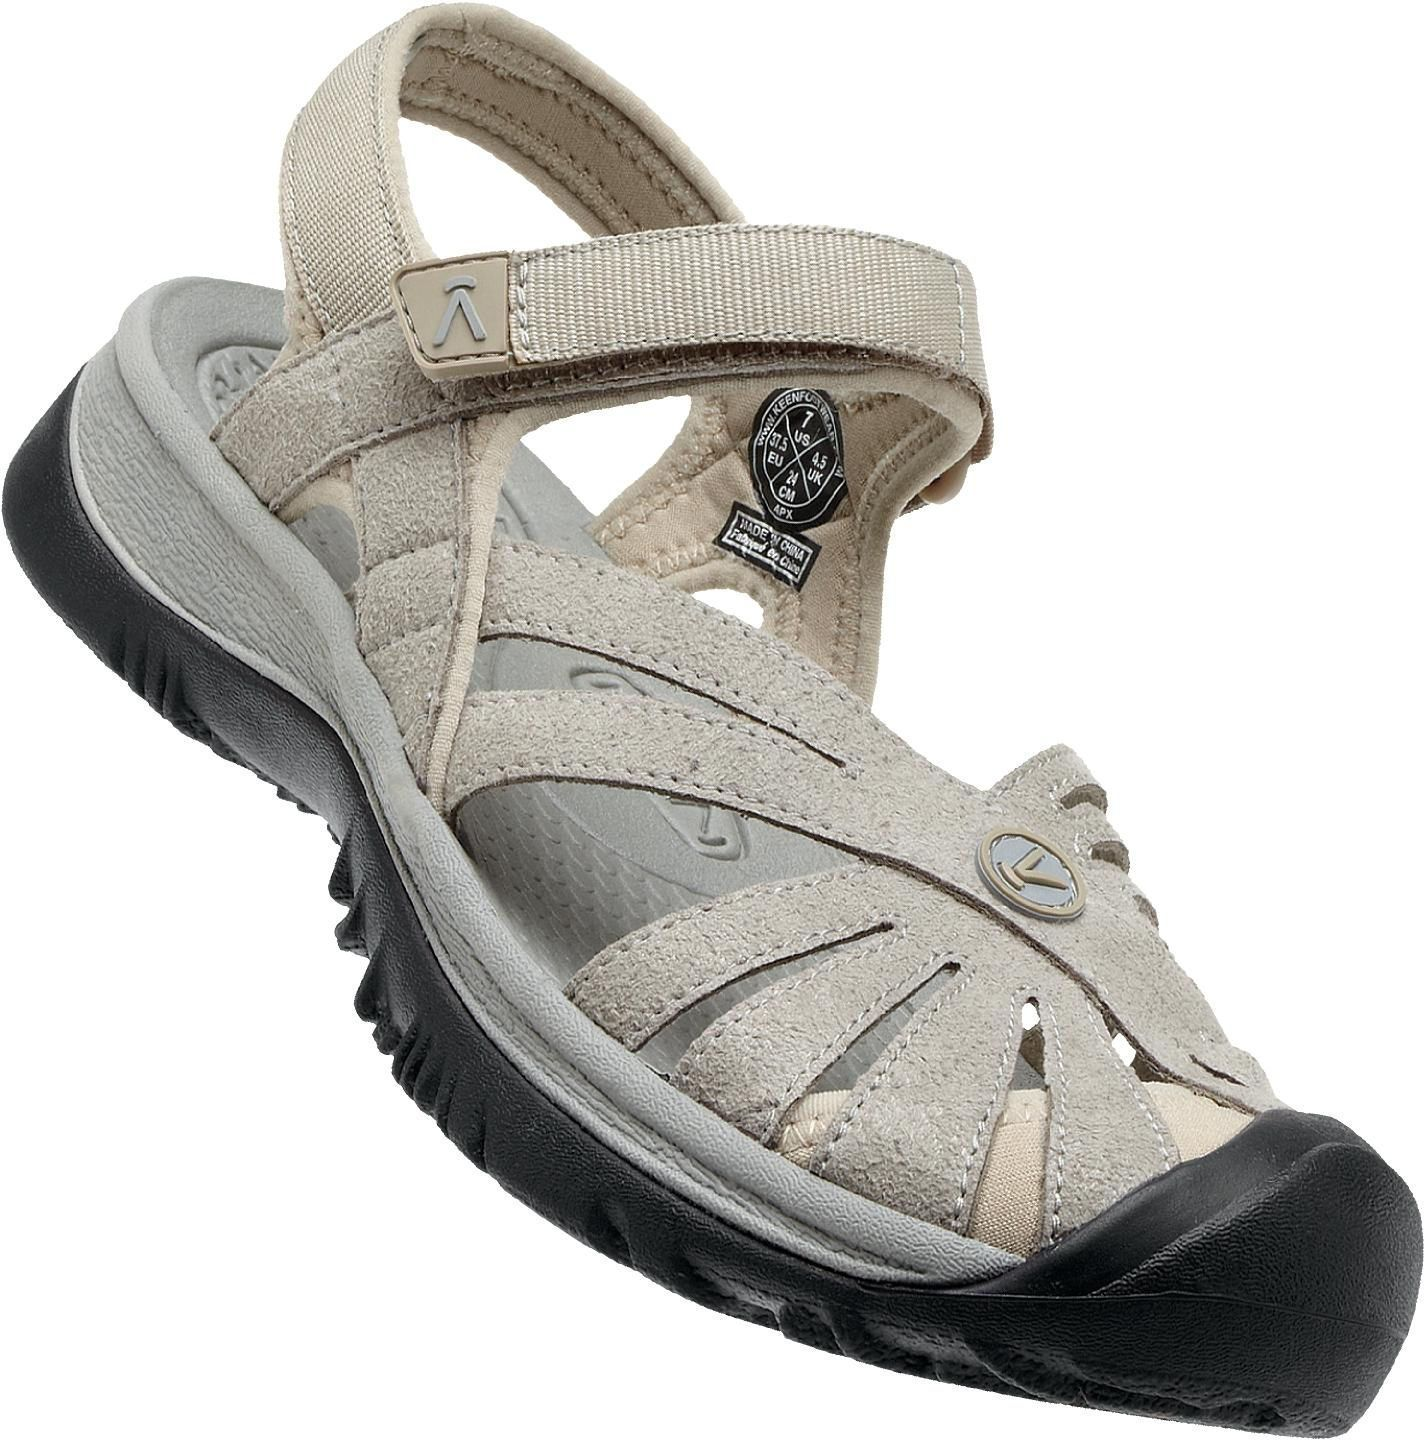 23217deb6c4 Keen Women S Rose Hook   Loop Closed Toe Sandals Aluminum Neutral Gray  1010998 Gris